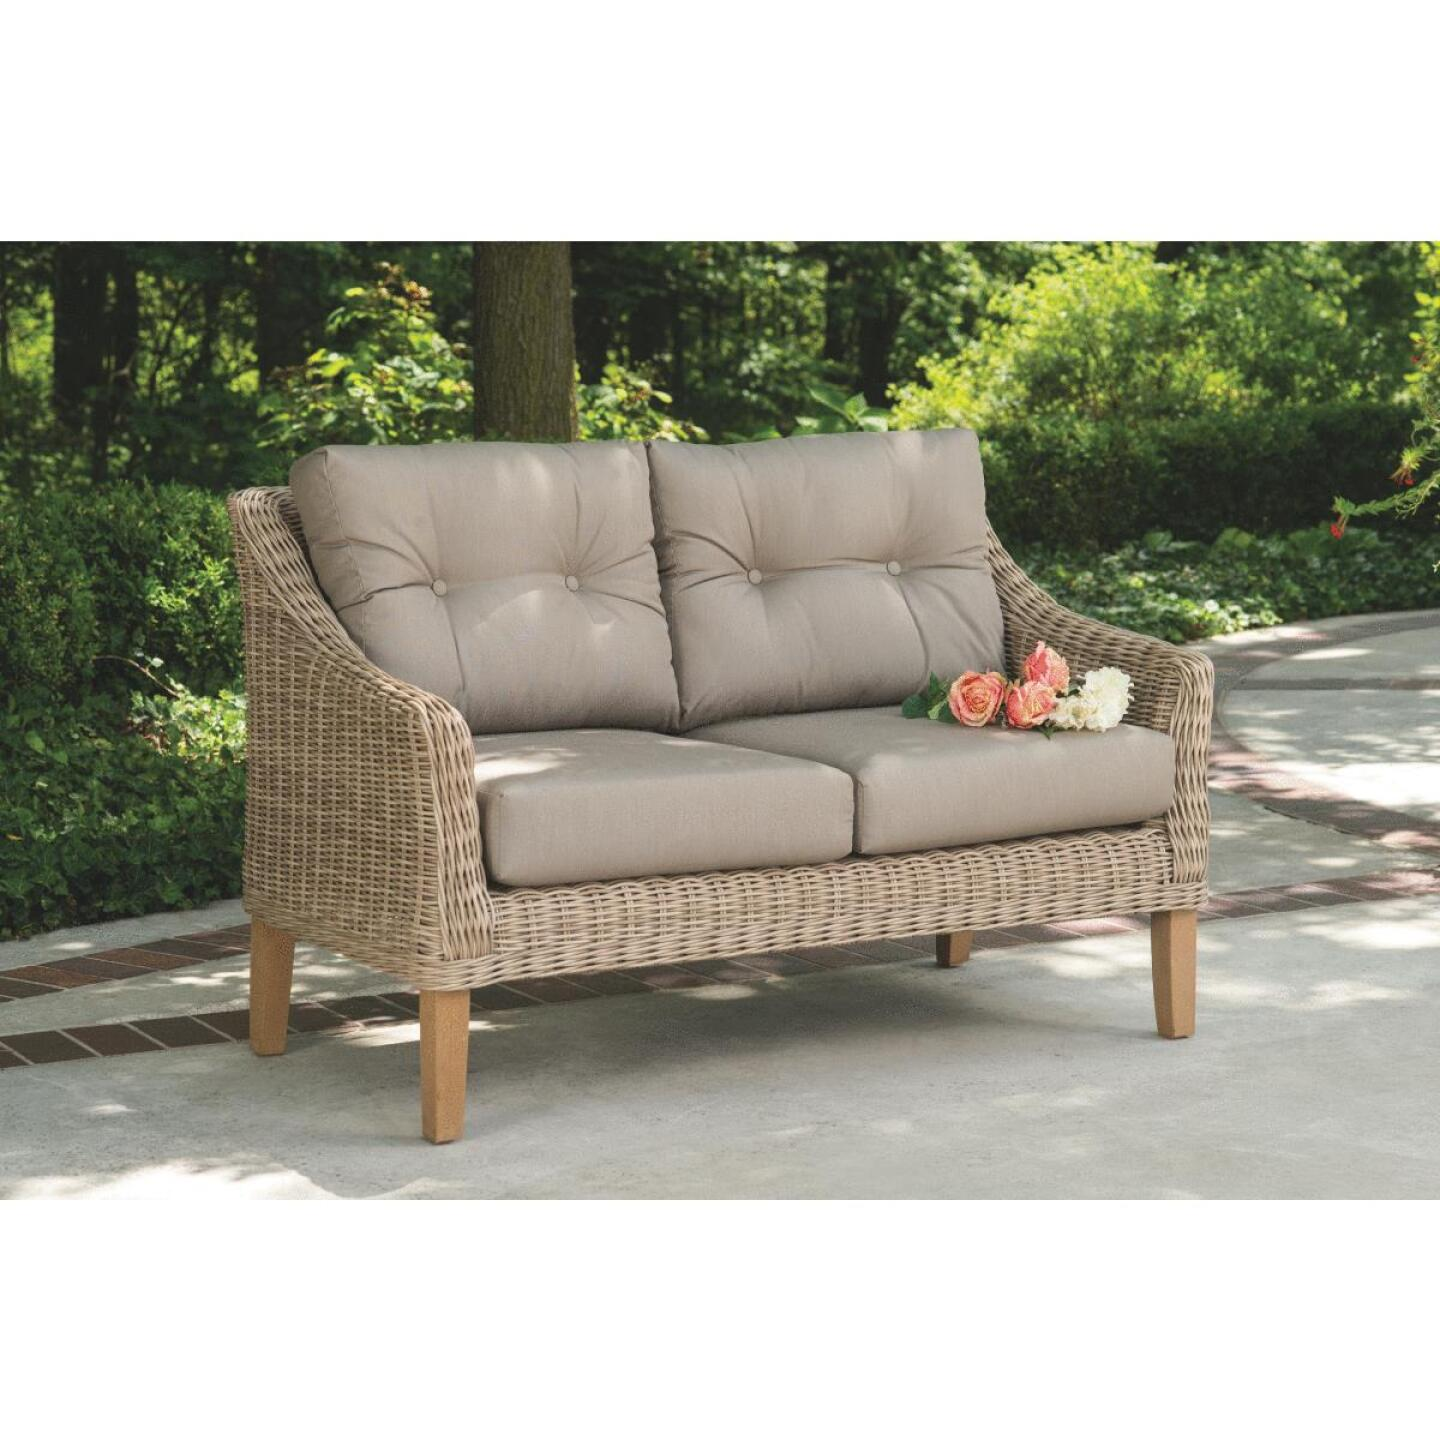 Cambria 2-Person 51 In. W. x 31 In. H. x 29 In. D. Wicker Loveseat Image 4